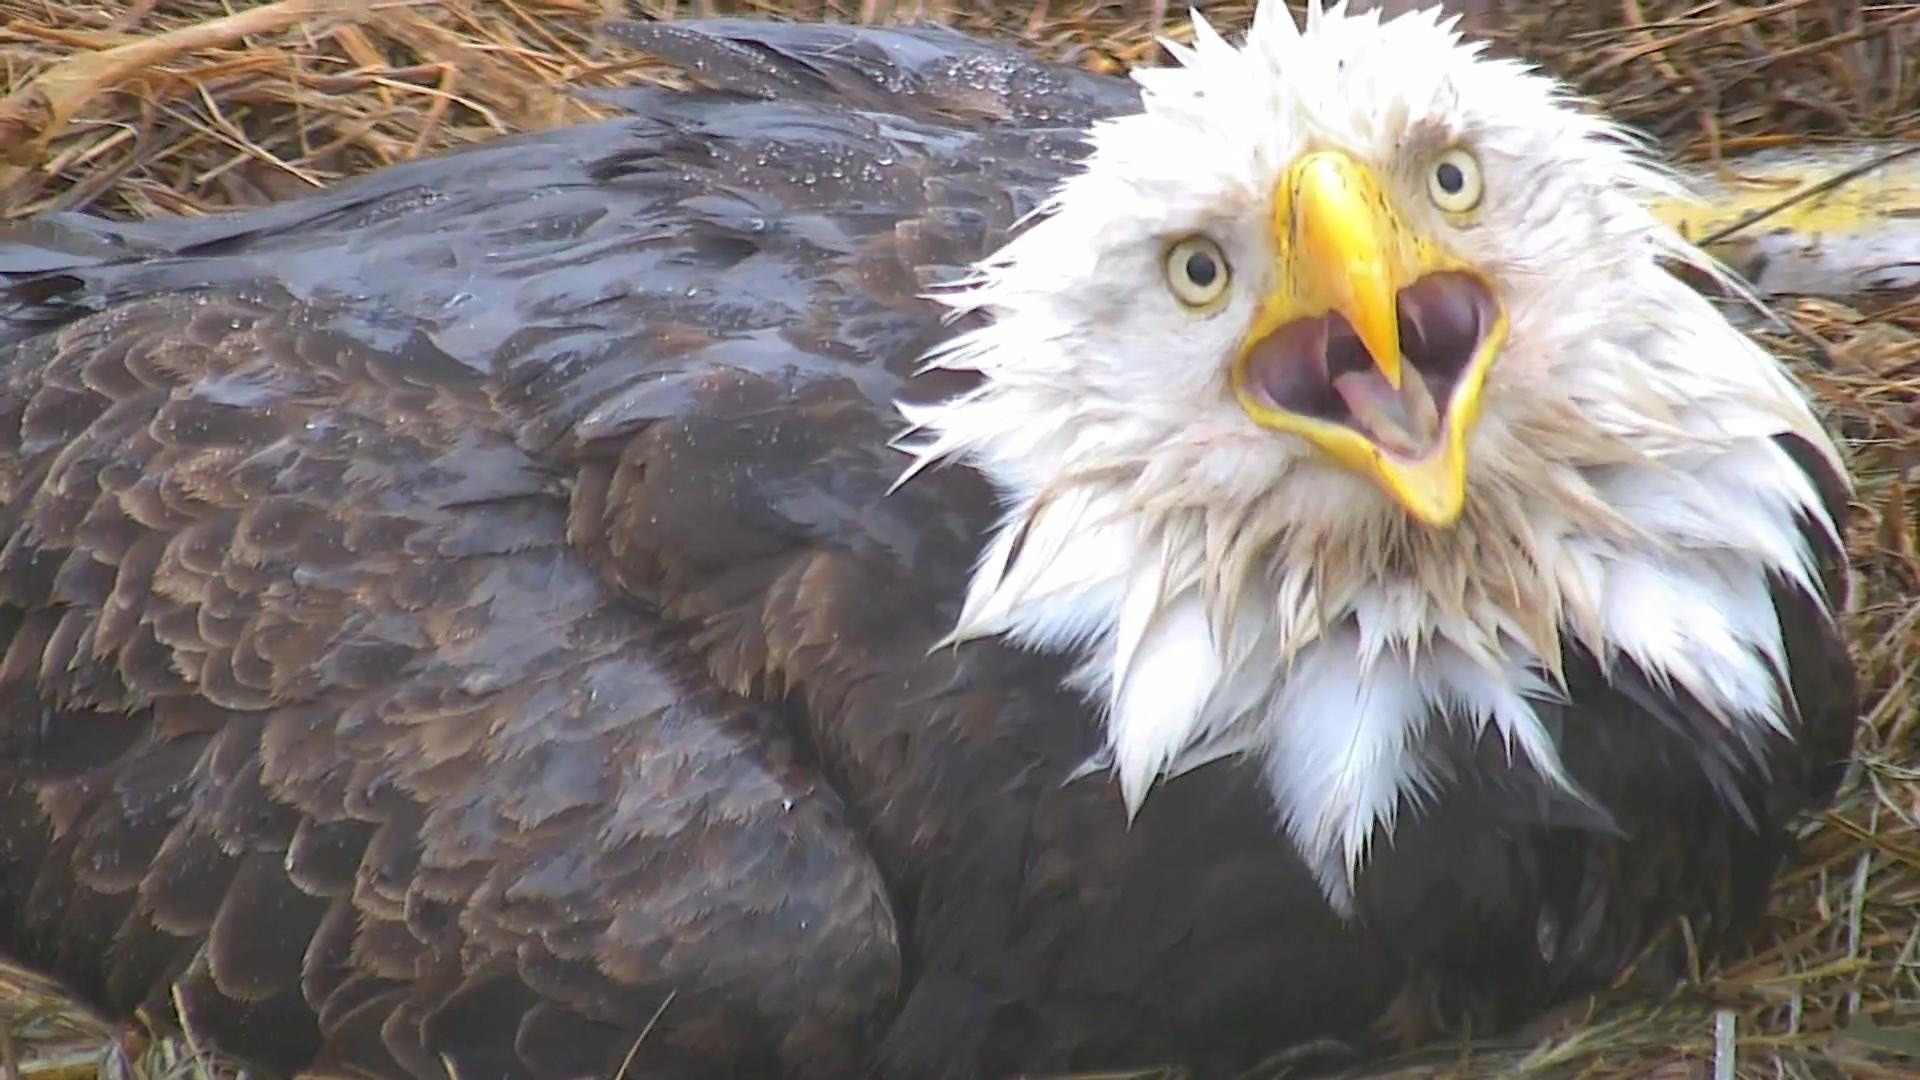 Decorah Eagles Live Cam - nesting bald eagles | Explore.org